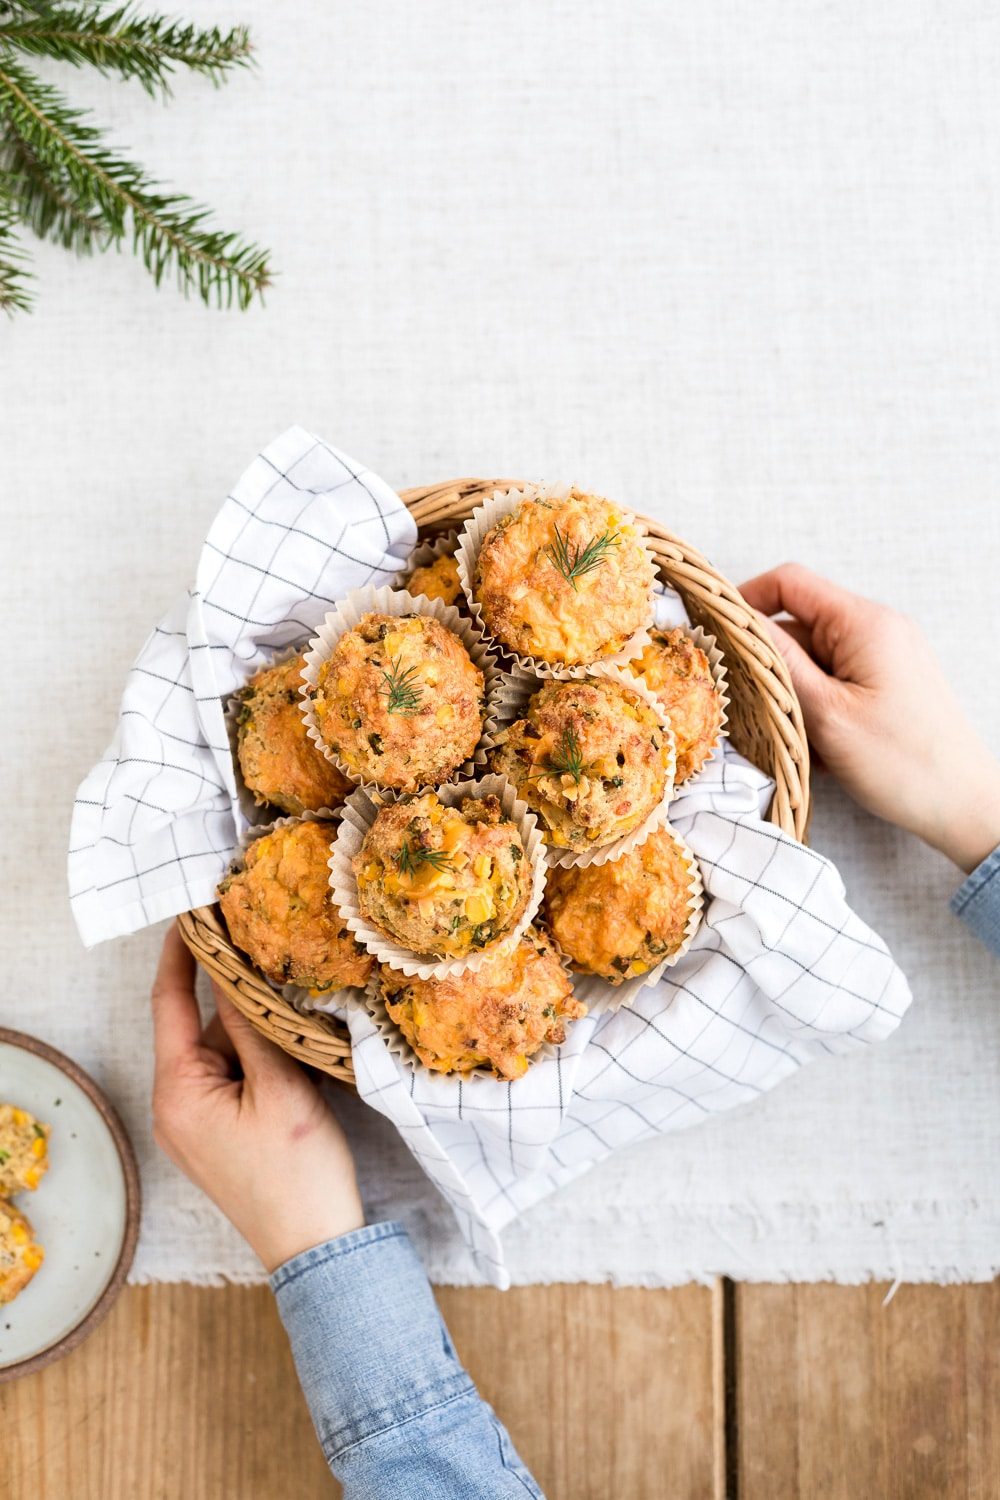 Healthyish Savory Recipes for the Game Day: A woman is photographed from the top view as she is serving Cornbread Muffins with Cheddar and Scallions in a basket lined with cloth.